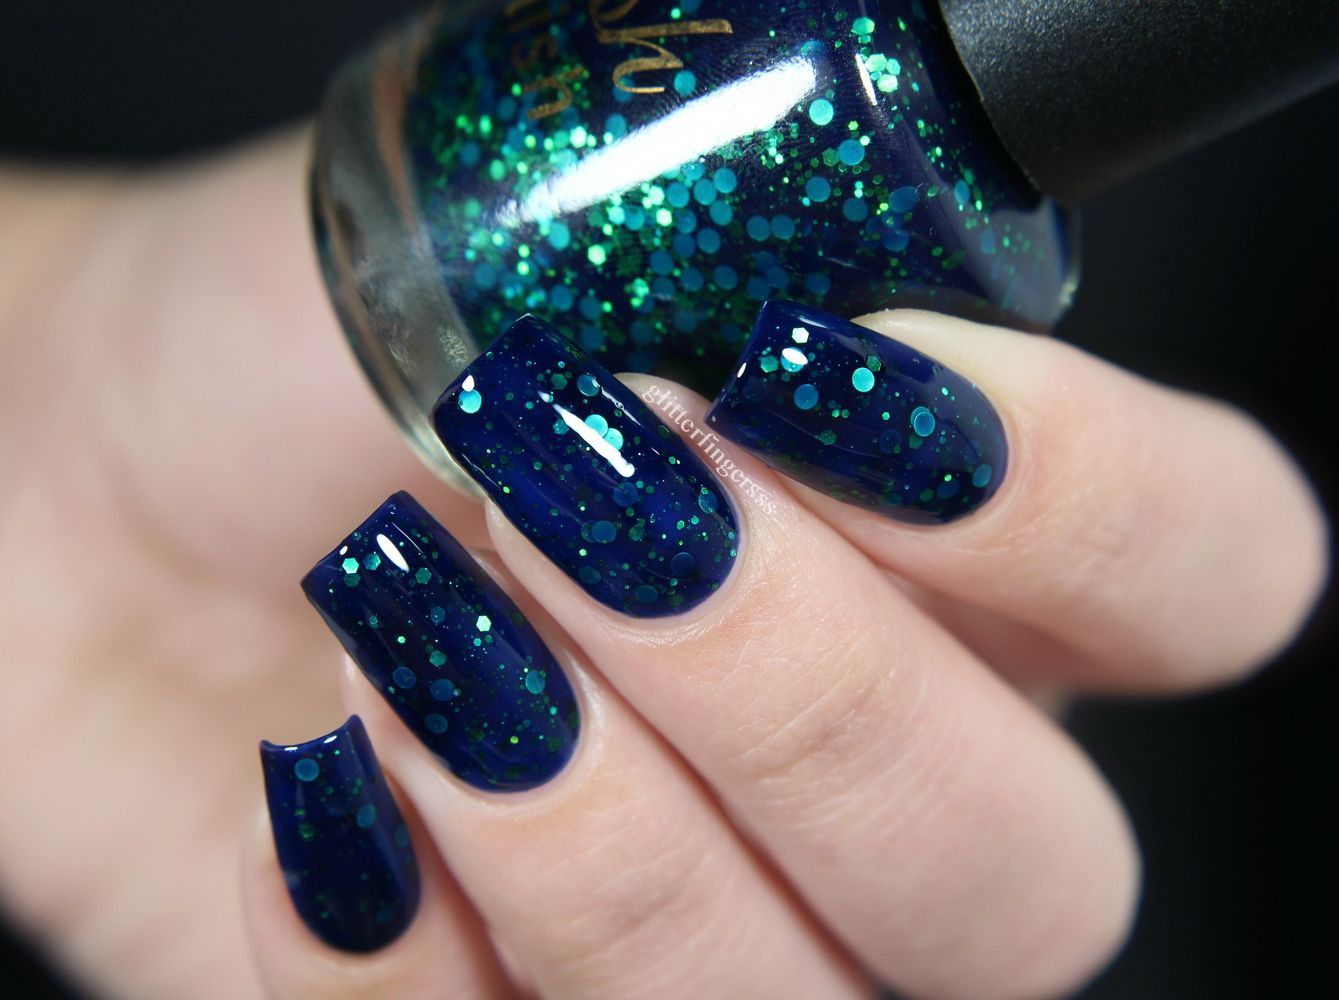 Clash of the Seas | Knight, Holographic glitter and Makeup